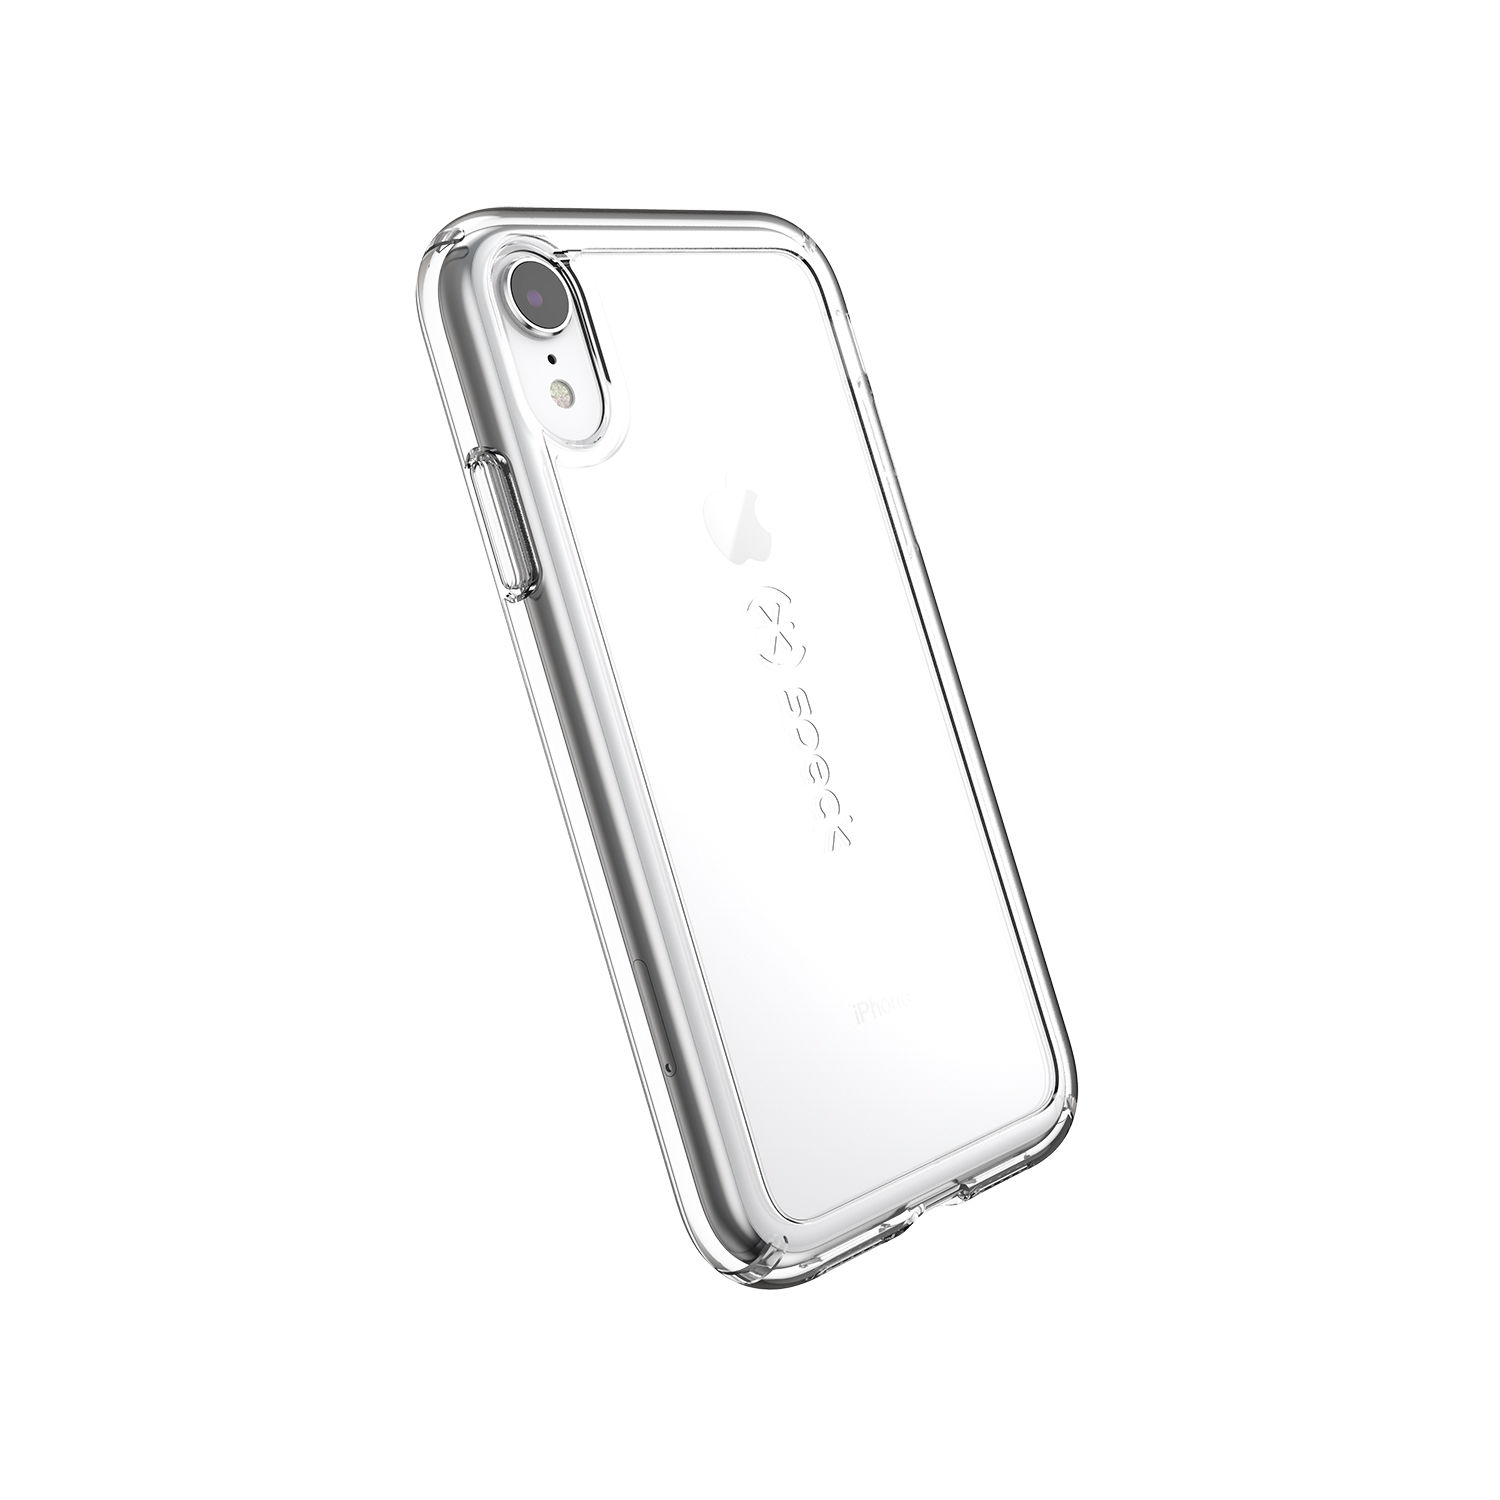 Compare prices for GemShell iPhone XR Cases Clear